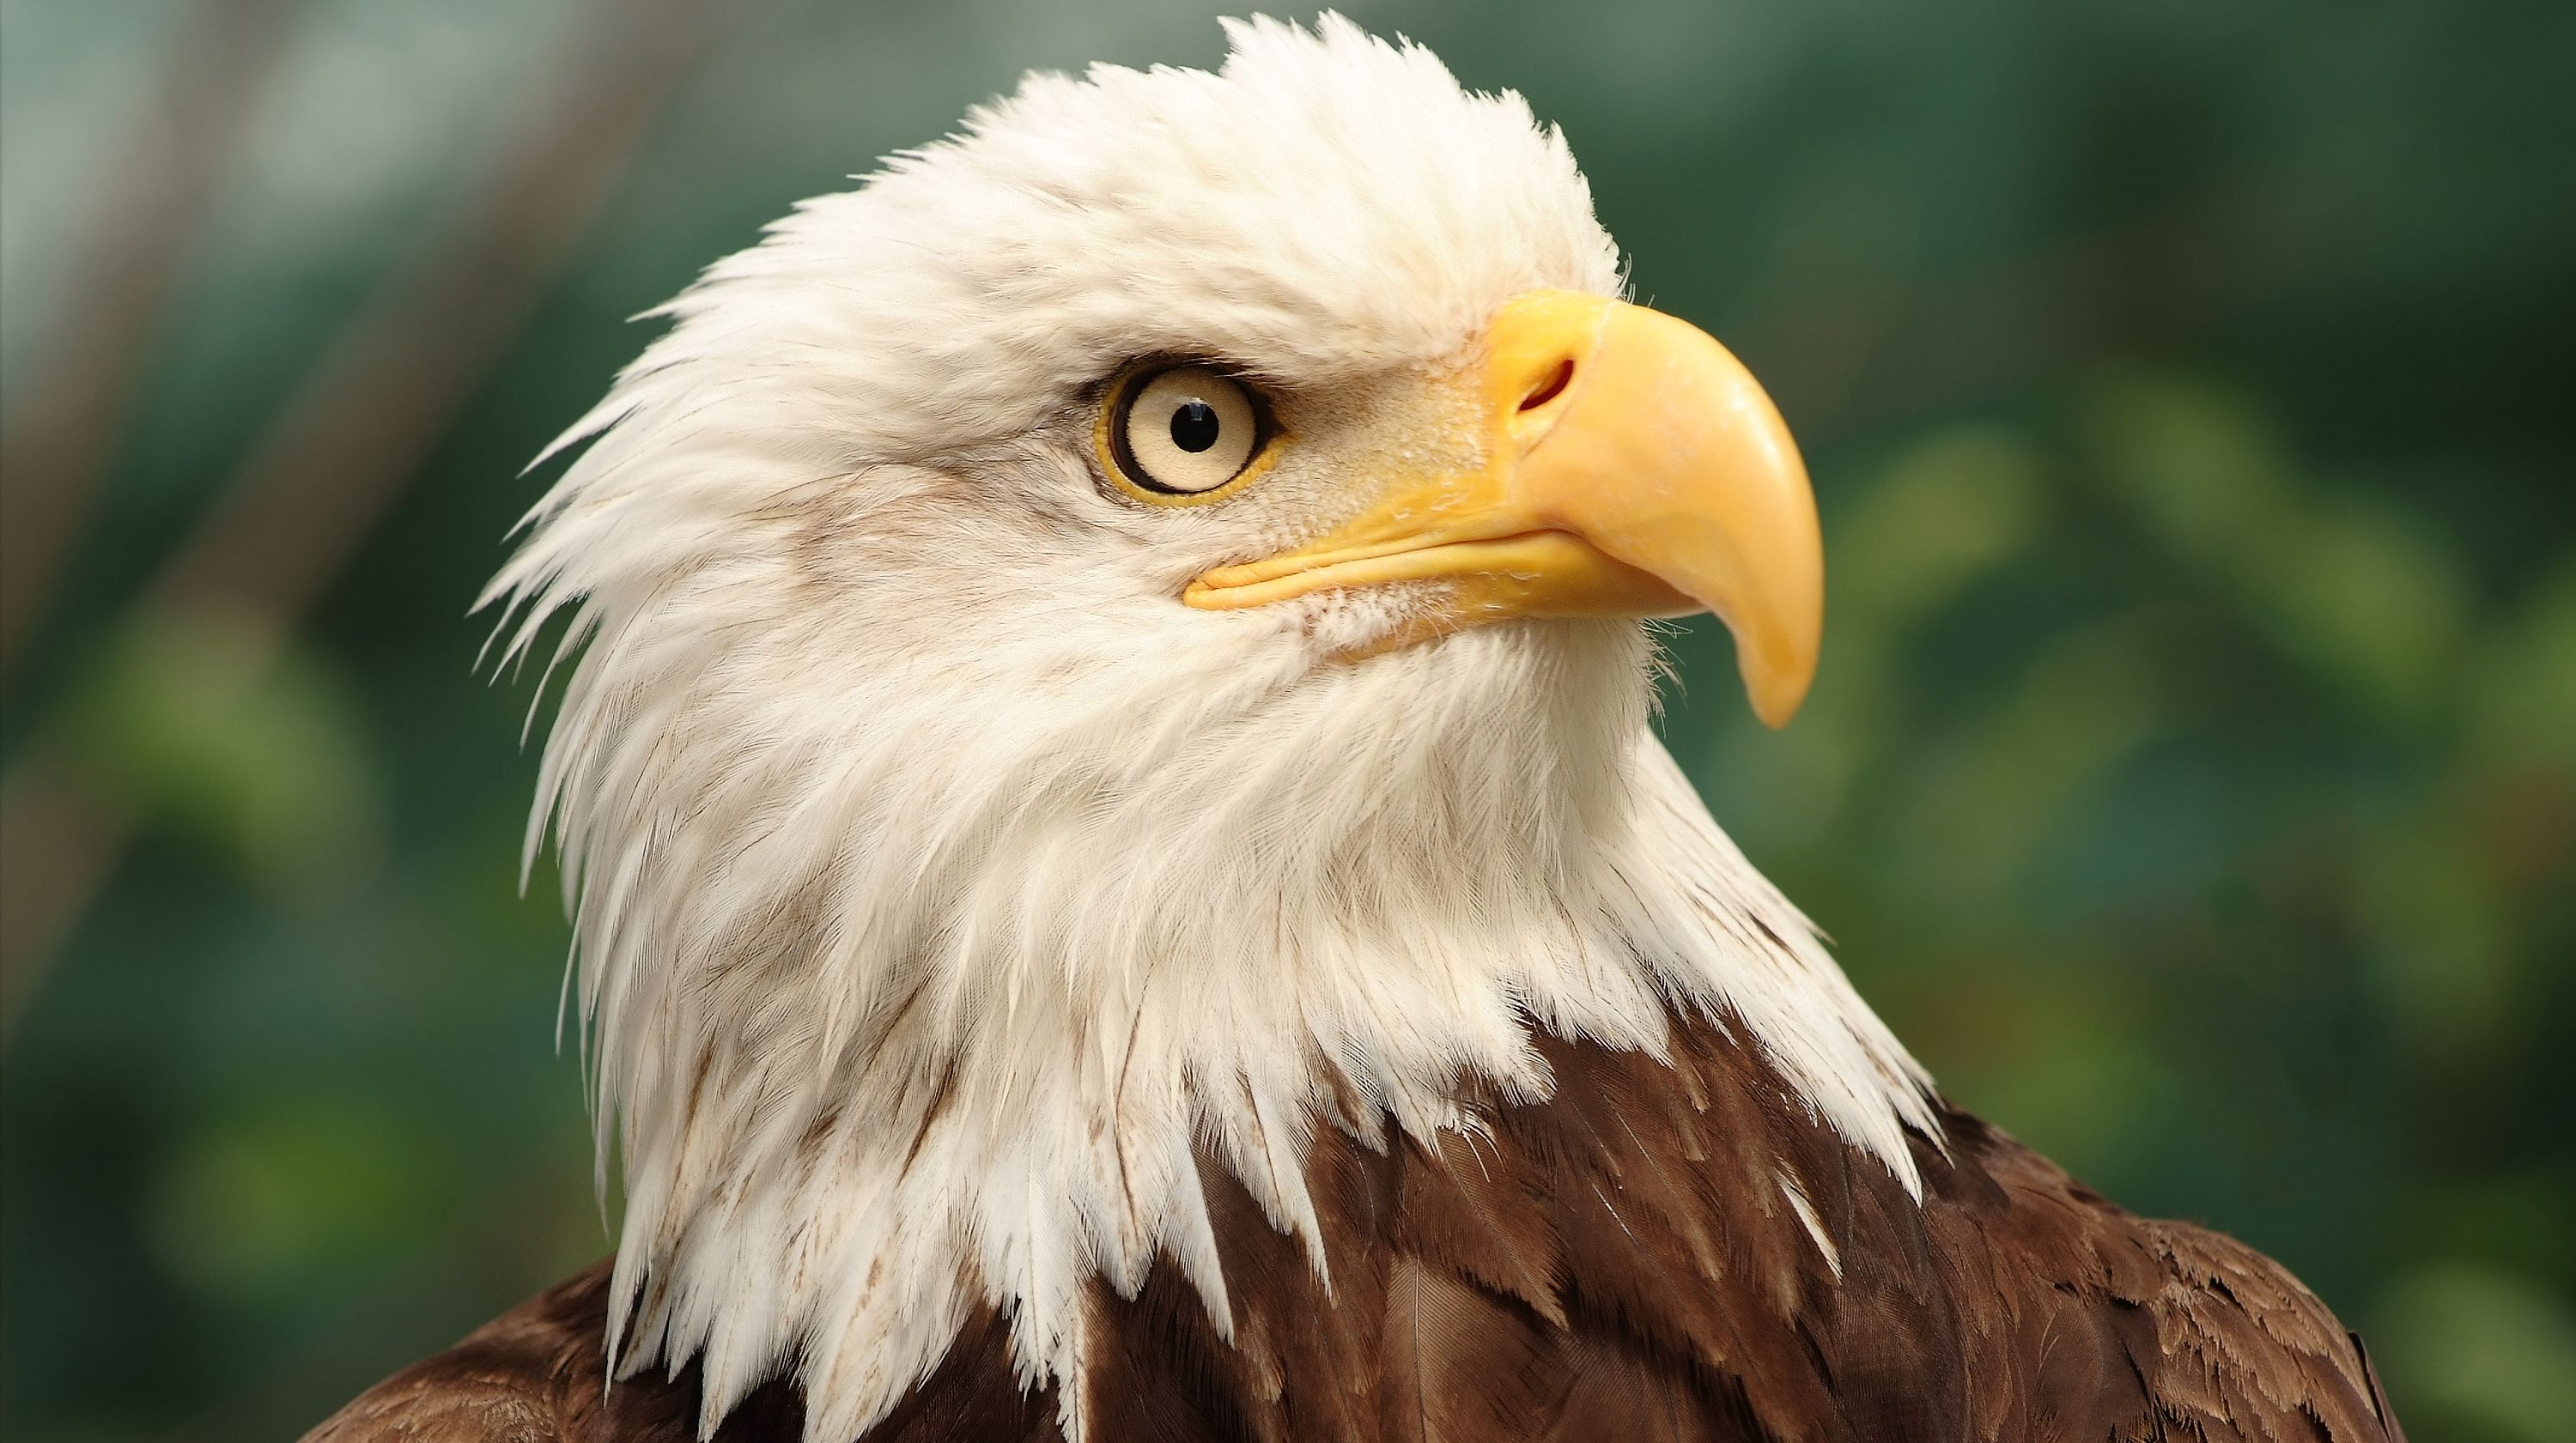 14 Bold Facts About Bald Eagles